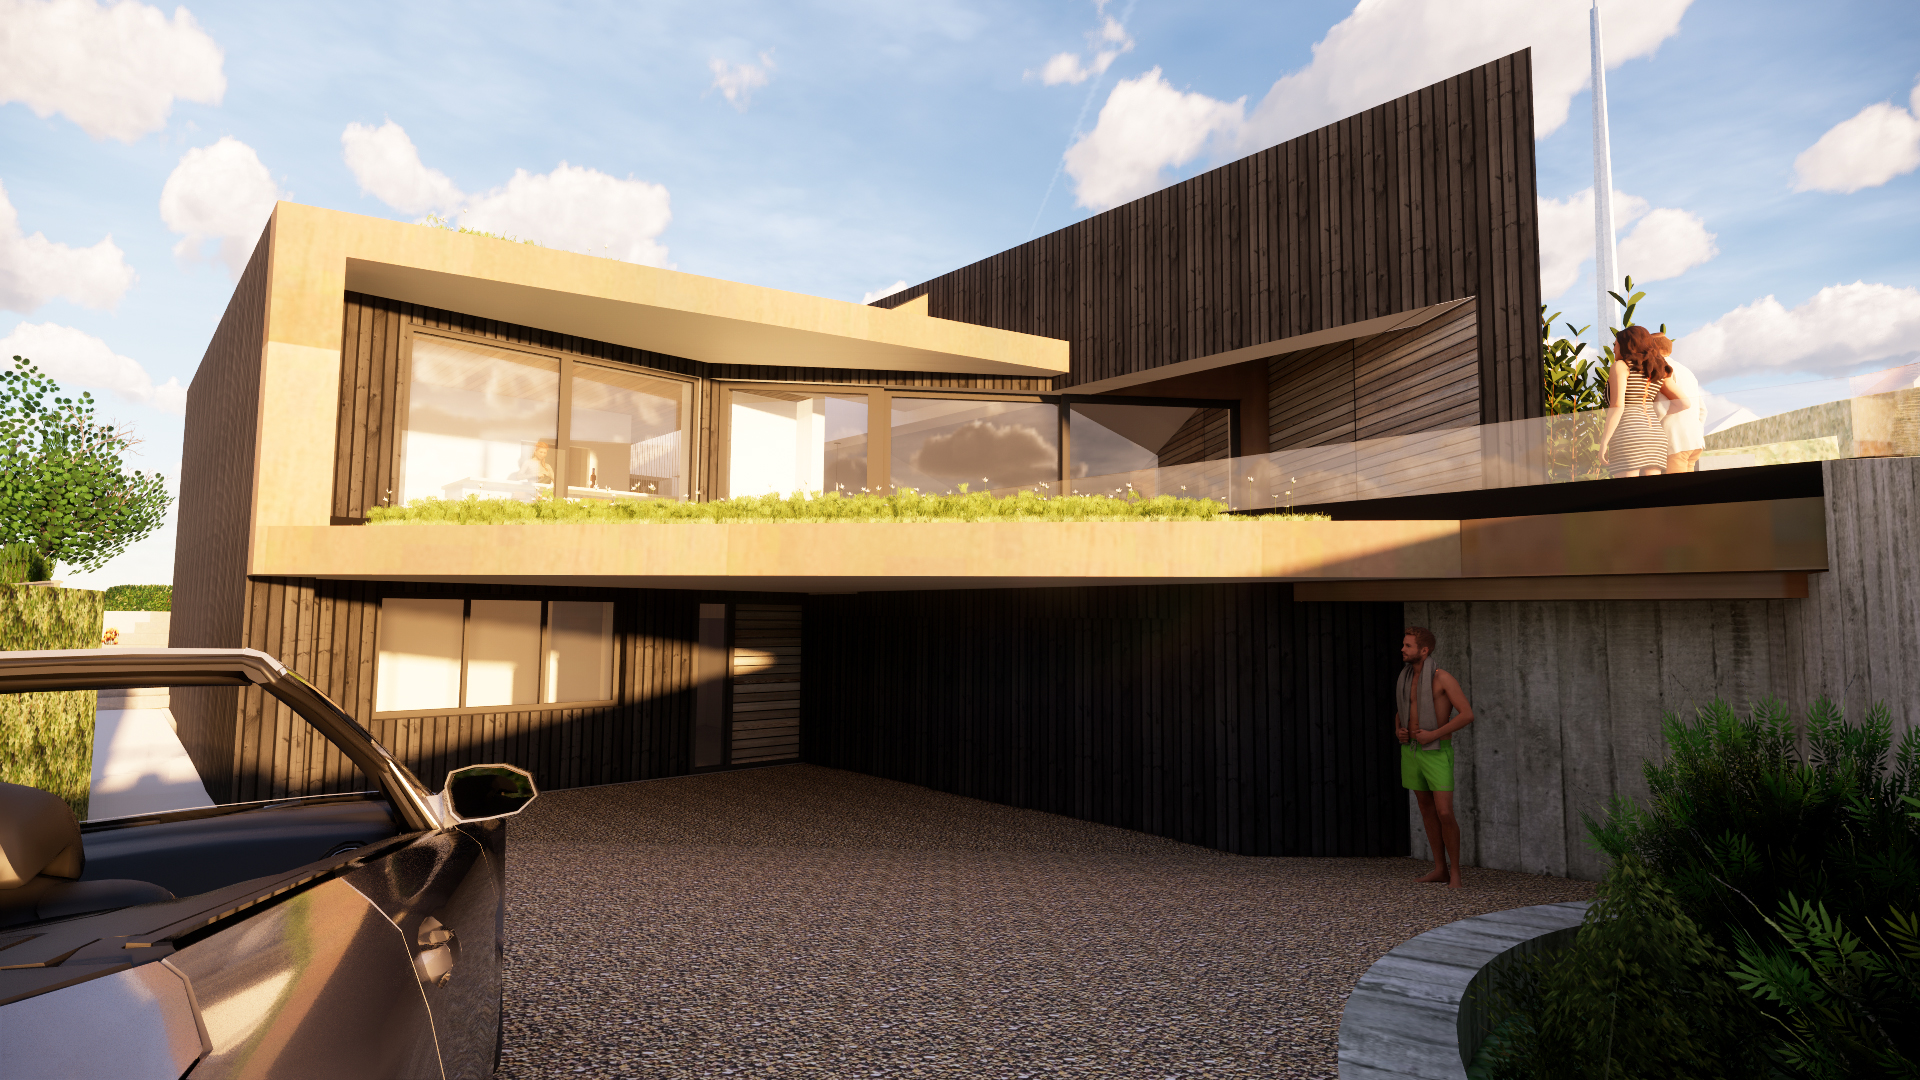 New Project Design Polzeath by ARCO2 Architecture